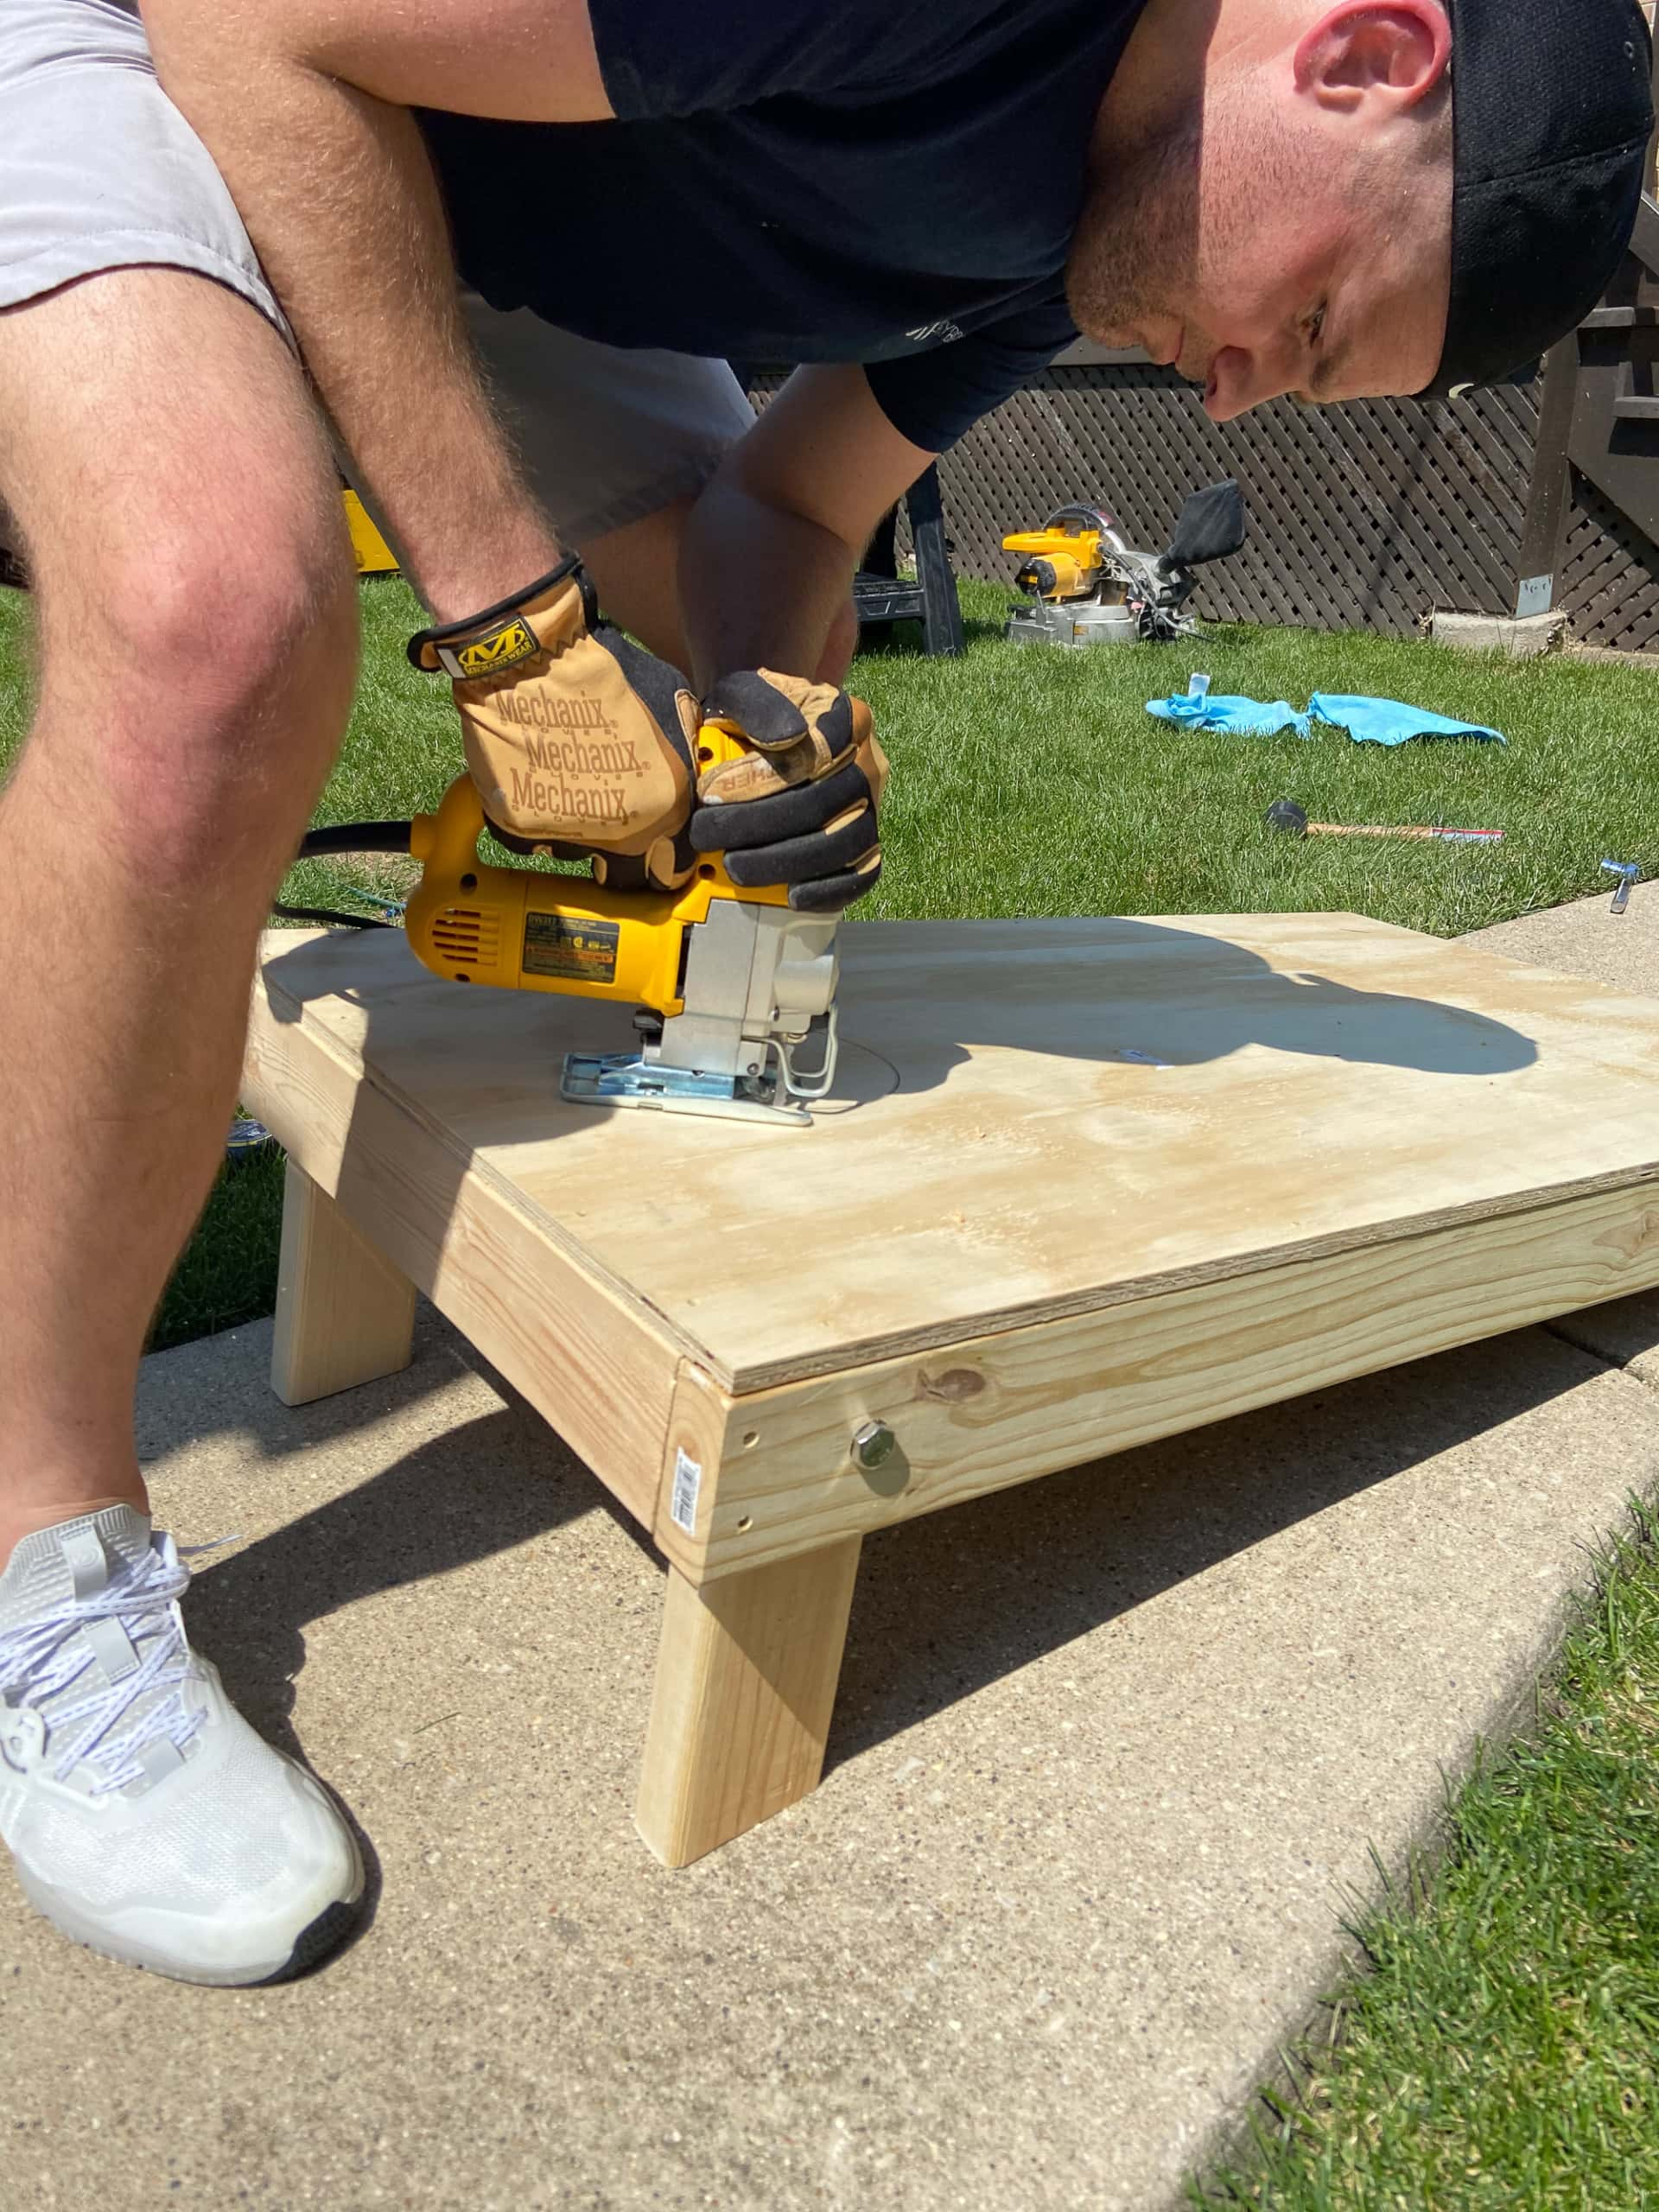 use a jigsaw to cut the cornhole hole